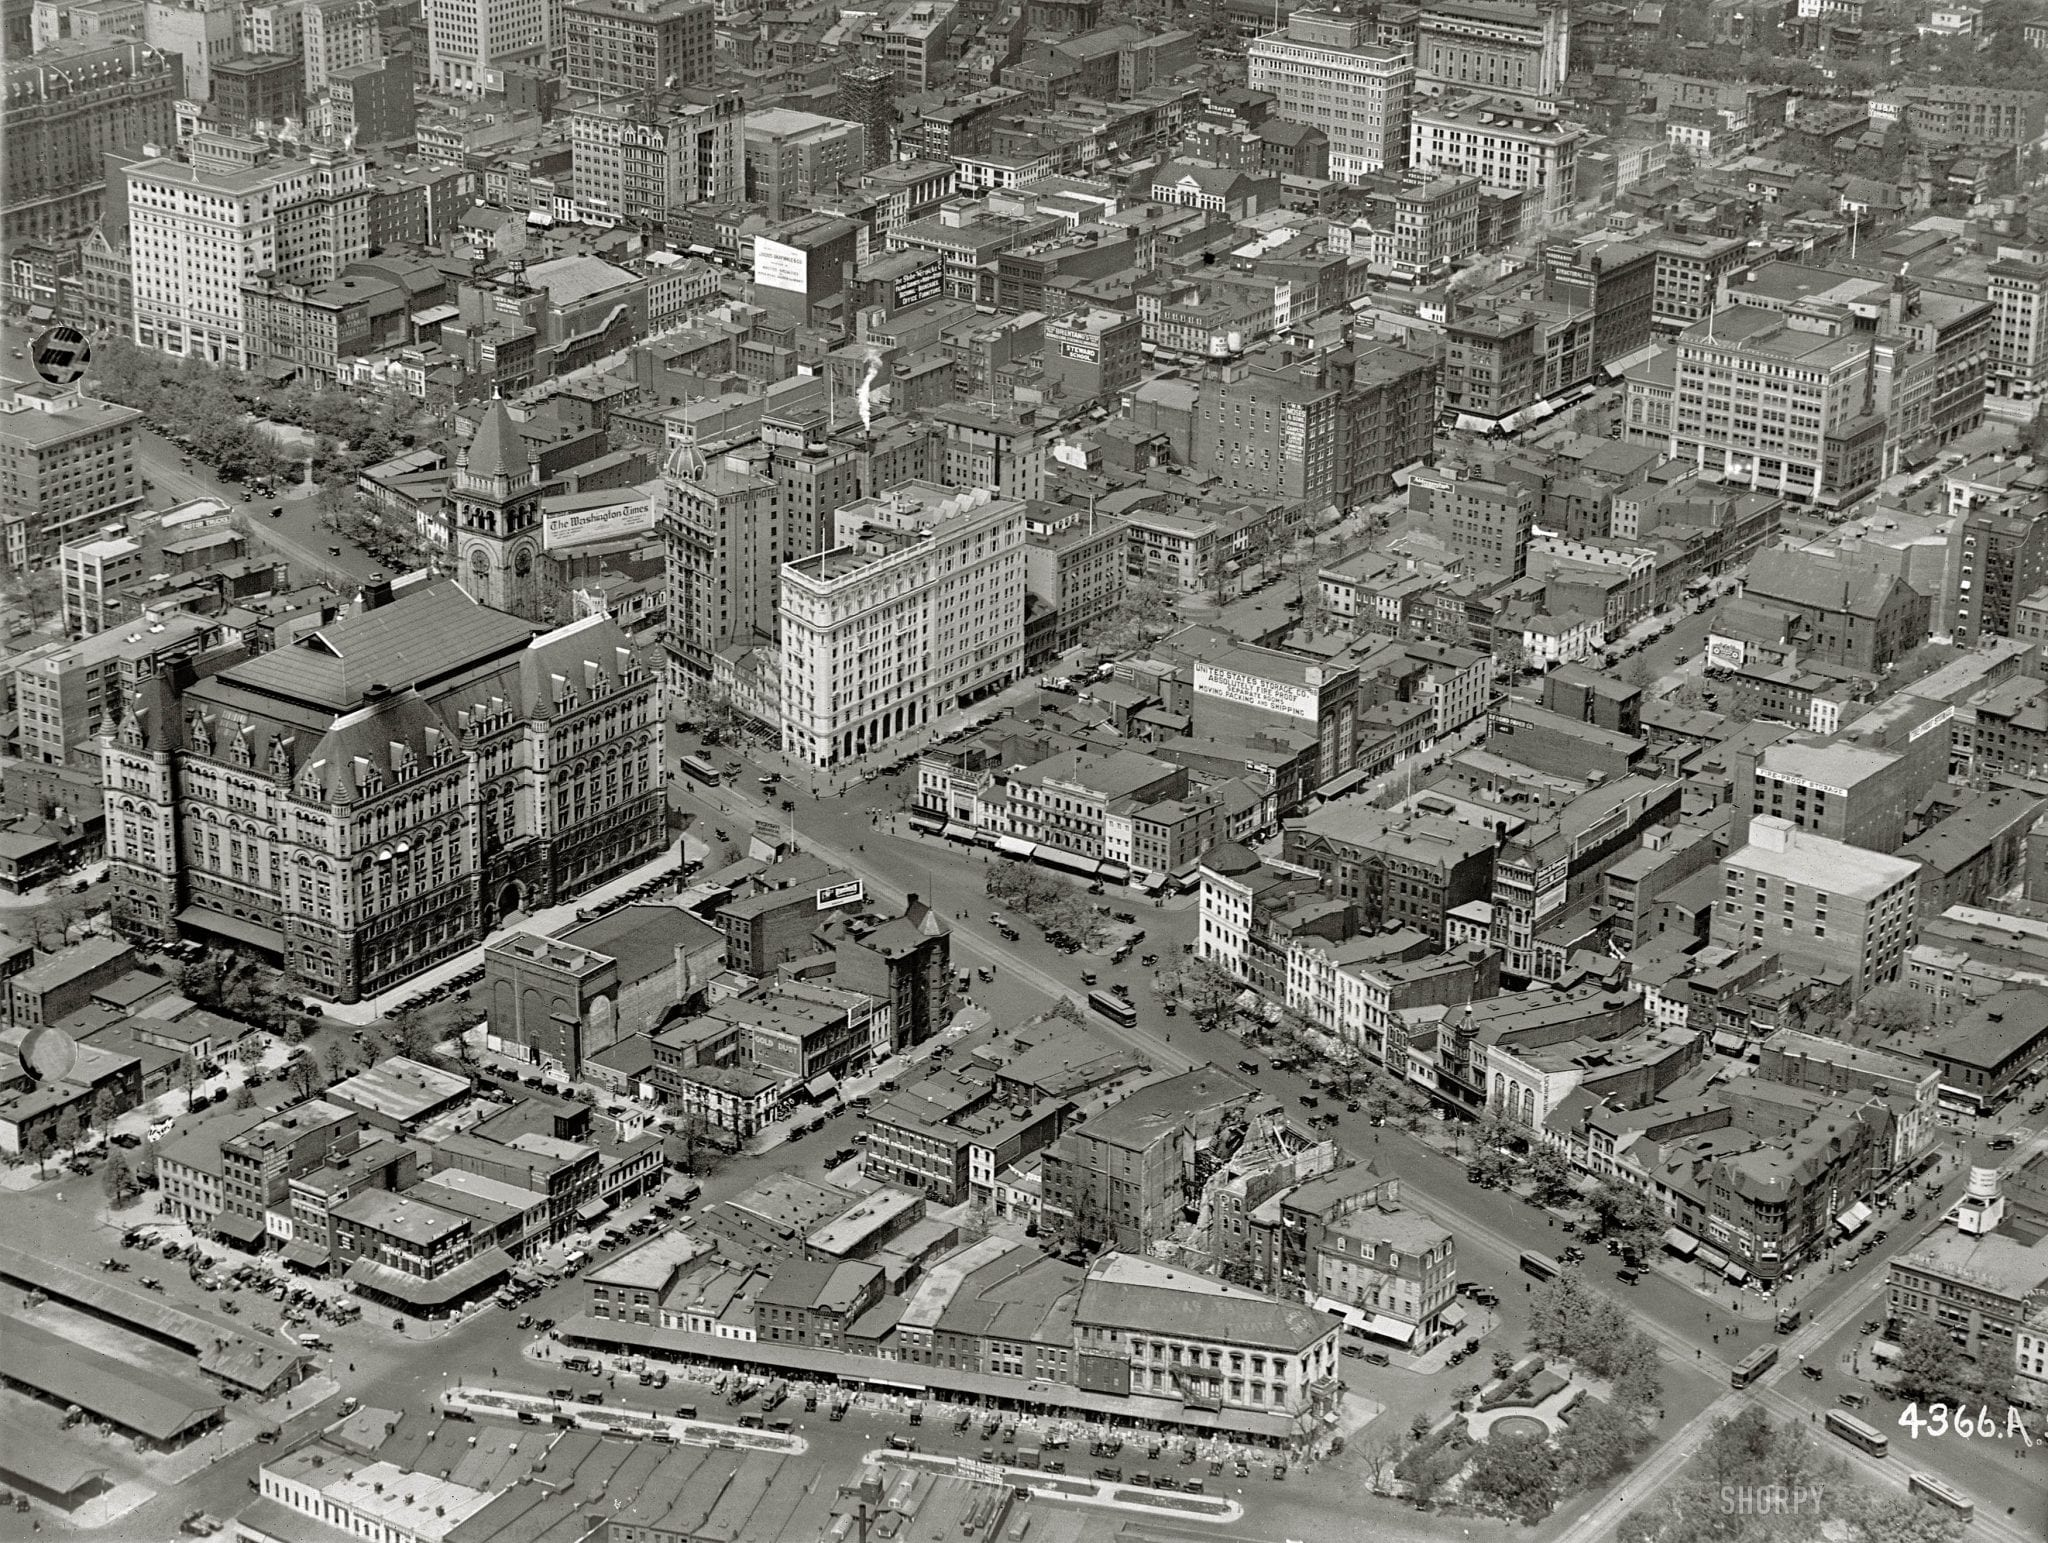 """Washington, D.C., circa 1922. """"Star Building from air."""" The Washington Star newspaper building at the center is at the intersection of 11th Street N.W. and Pennsylvania Avenue, which runs diagonally across the photo. The big building with the tower us the Old Post Office. There's a lot to see here, including laundry hung out to dry. National Photo Company glass negative."""